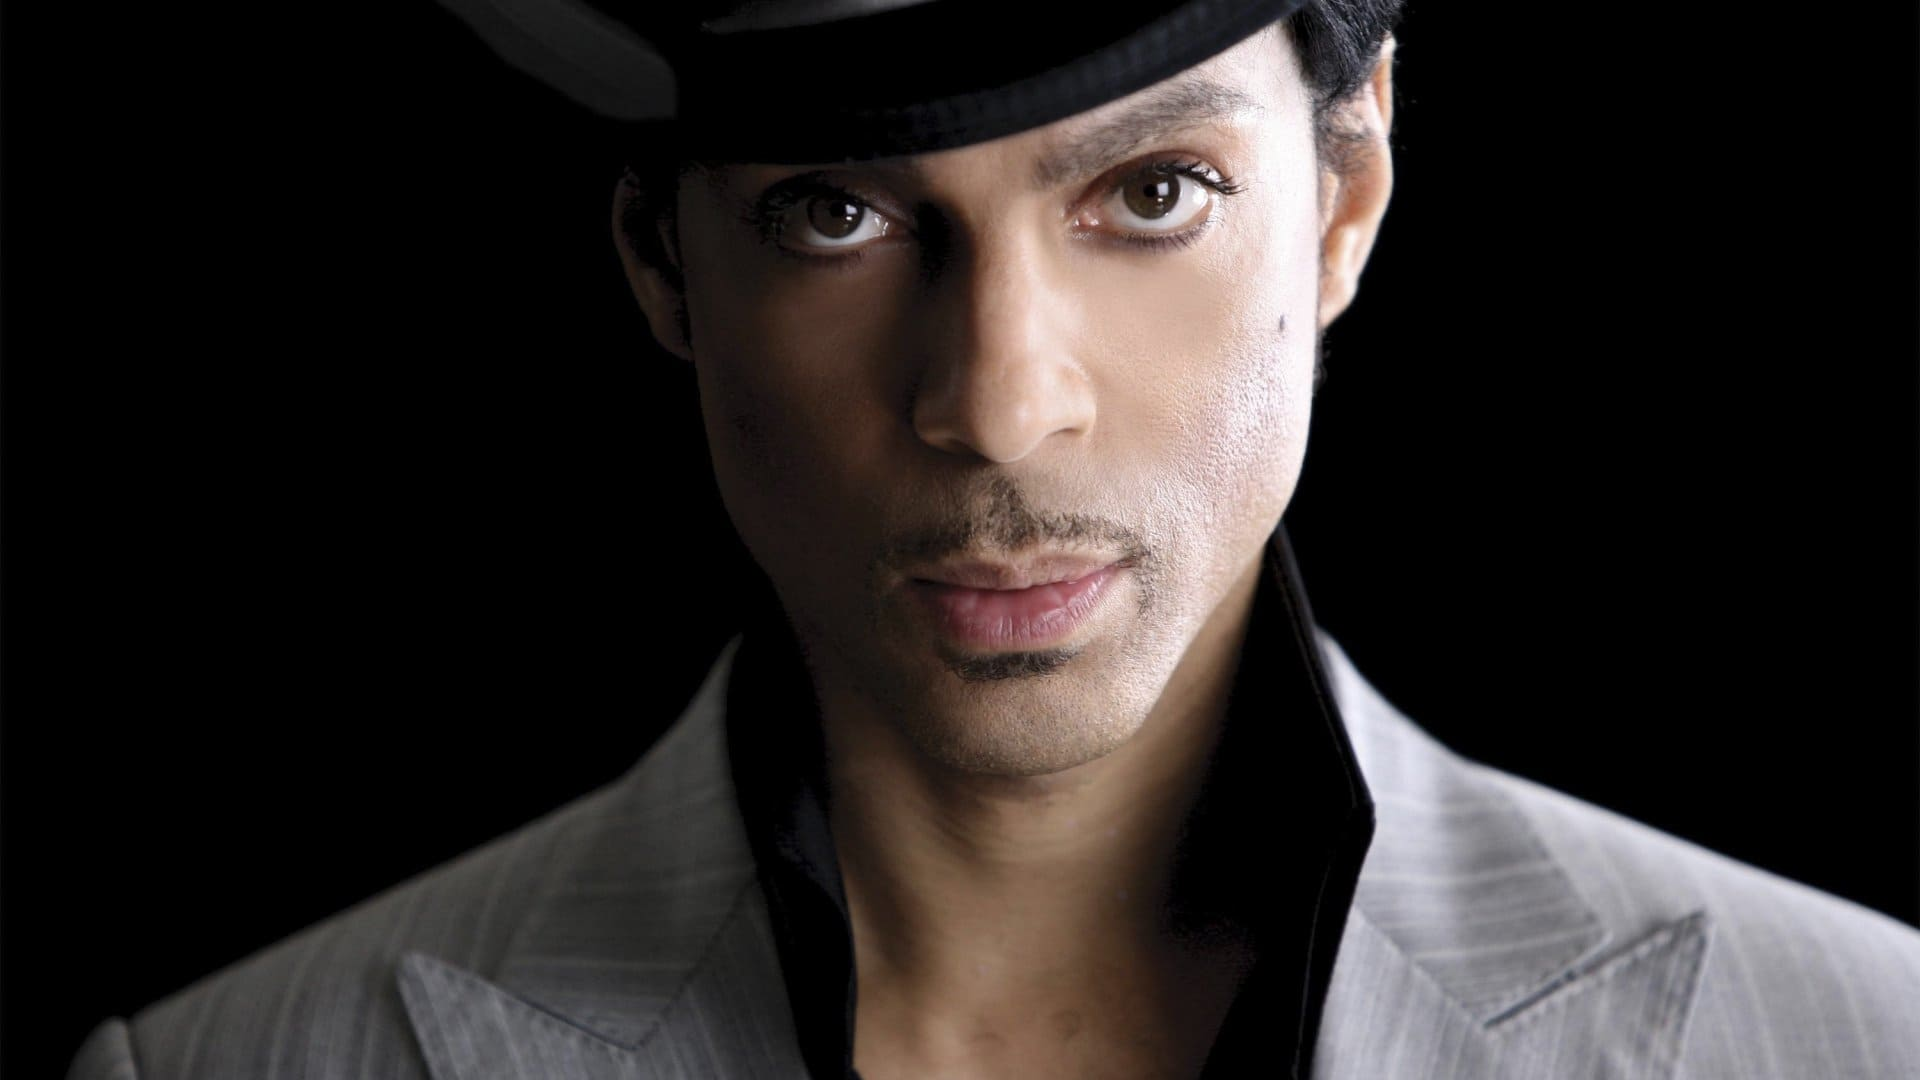 Prince backgrounds